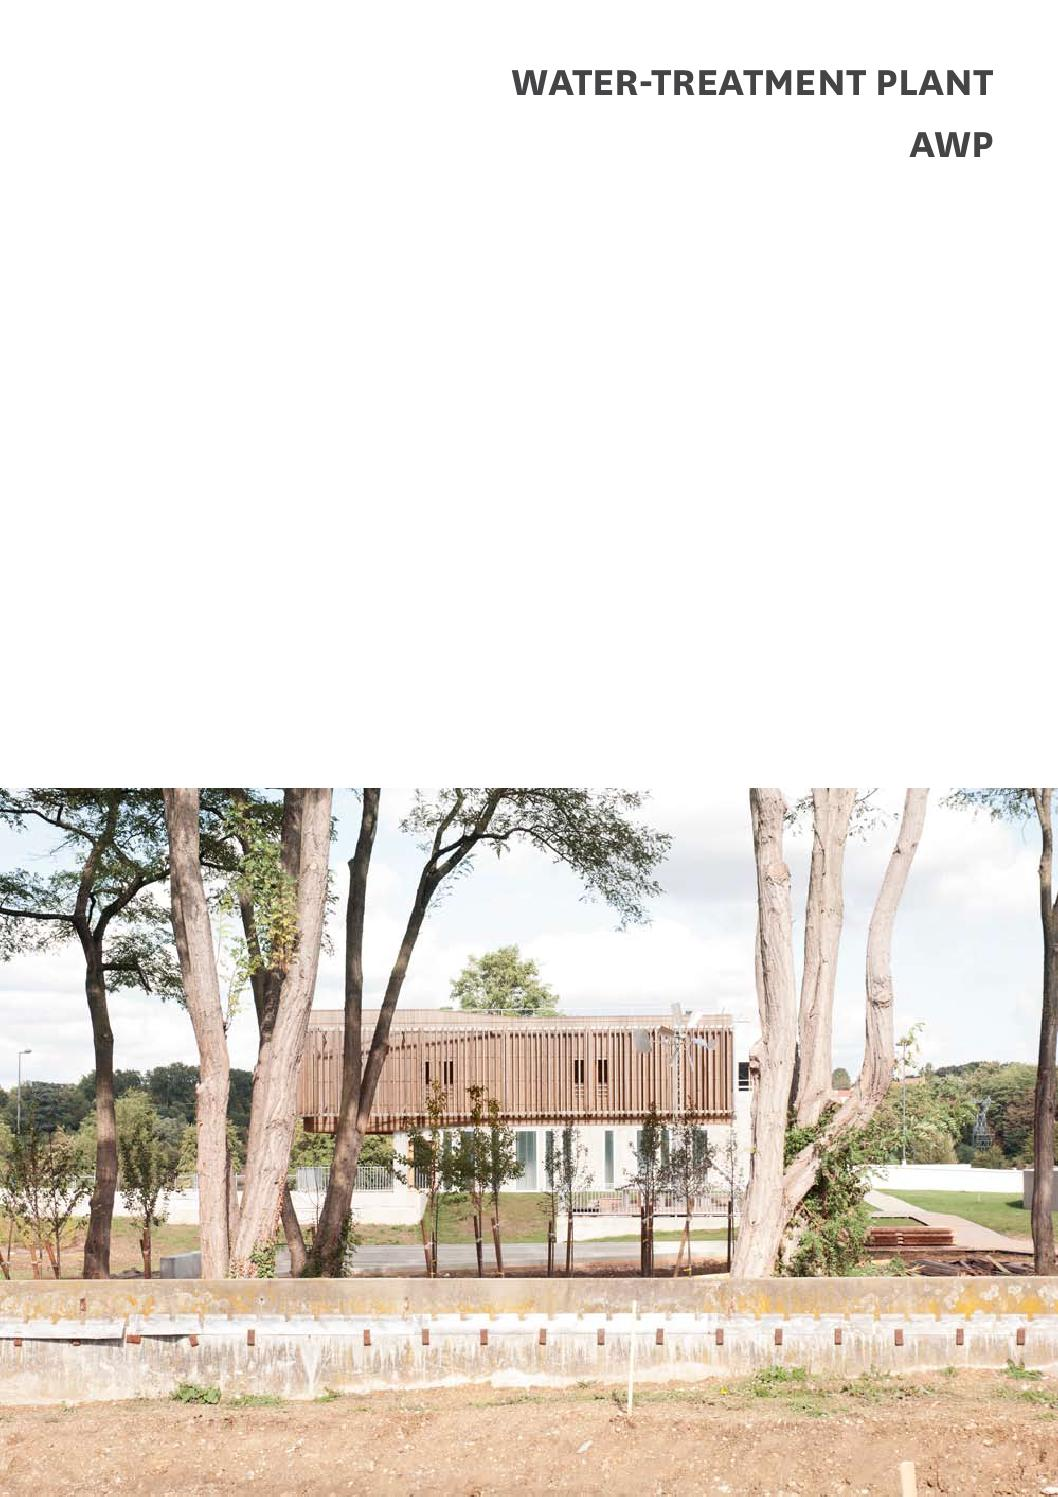 Parra Building Consultants : Water treatment plant évry by awp architecture issuu